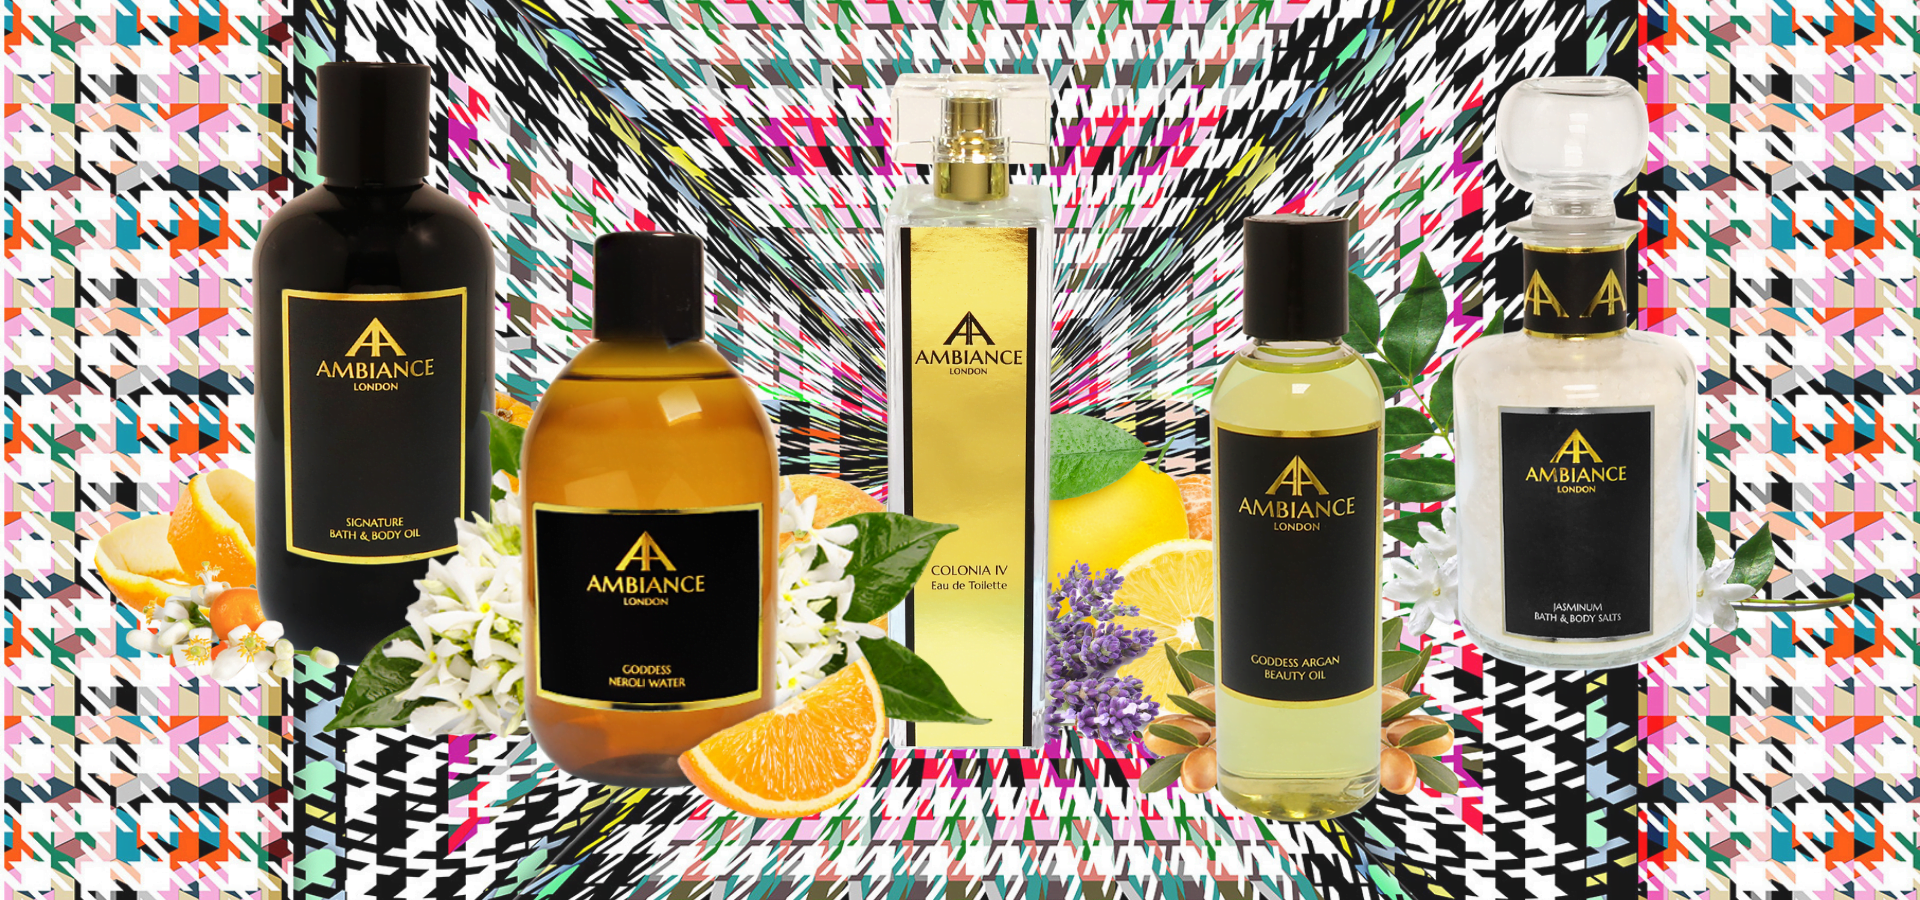 Reviving scents and skincare for Spring - Ancienne Ambiance top picks for spring